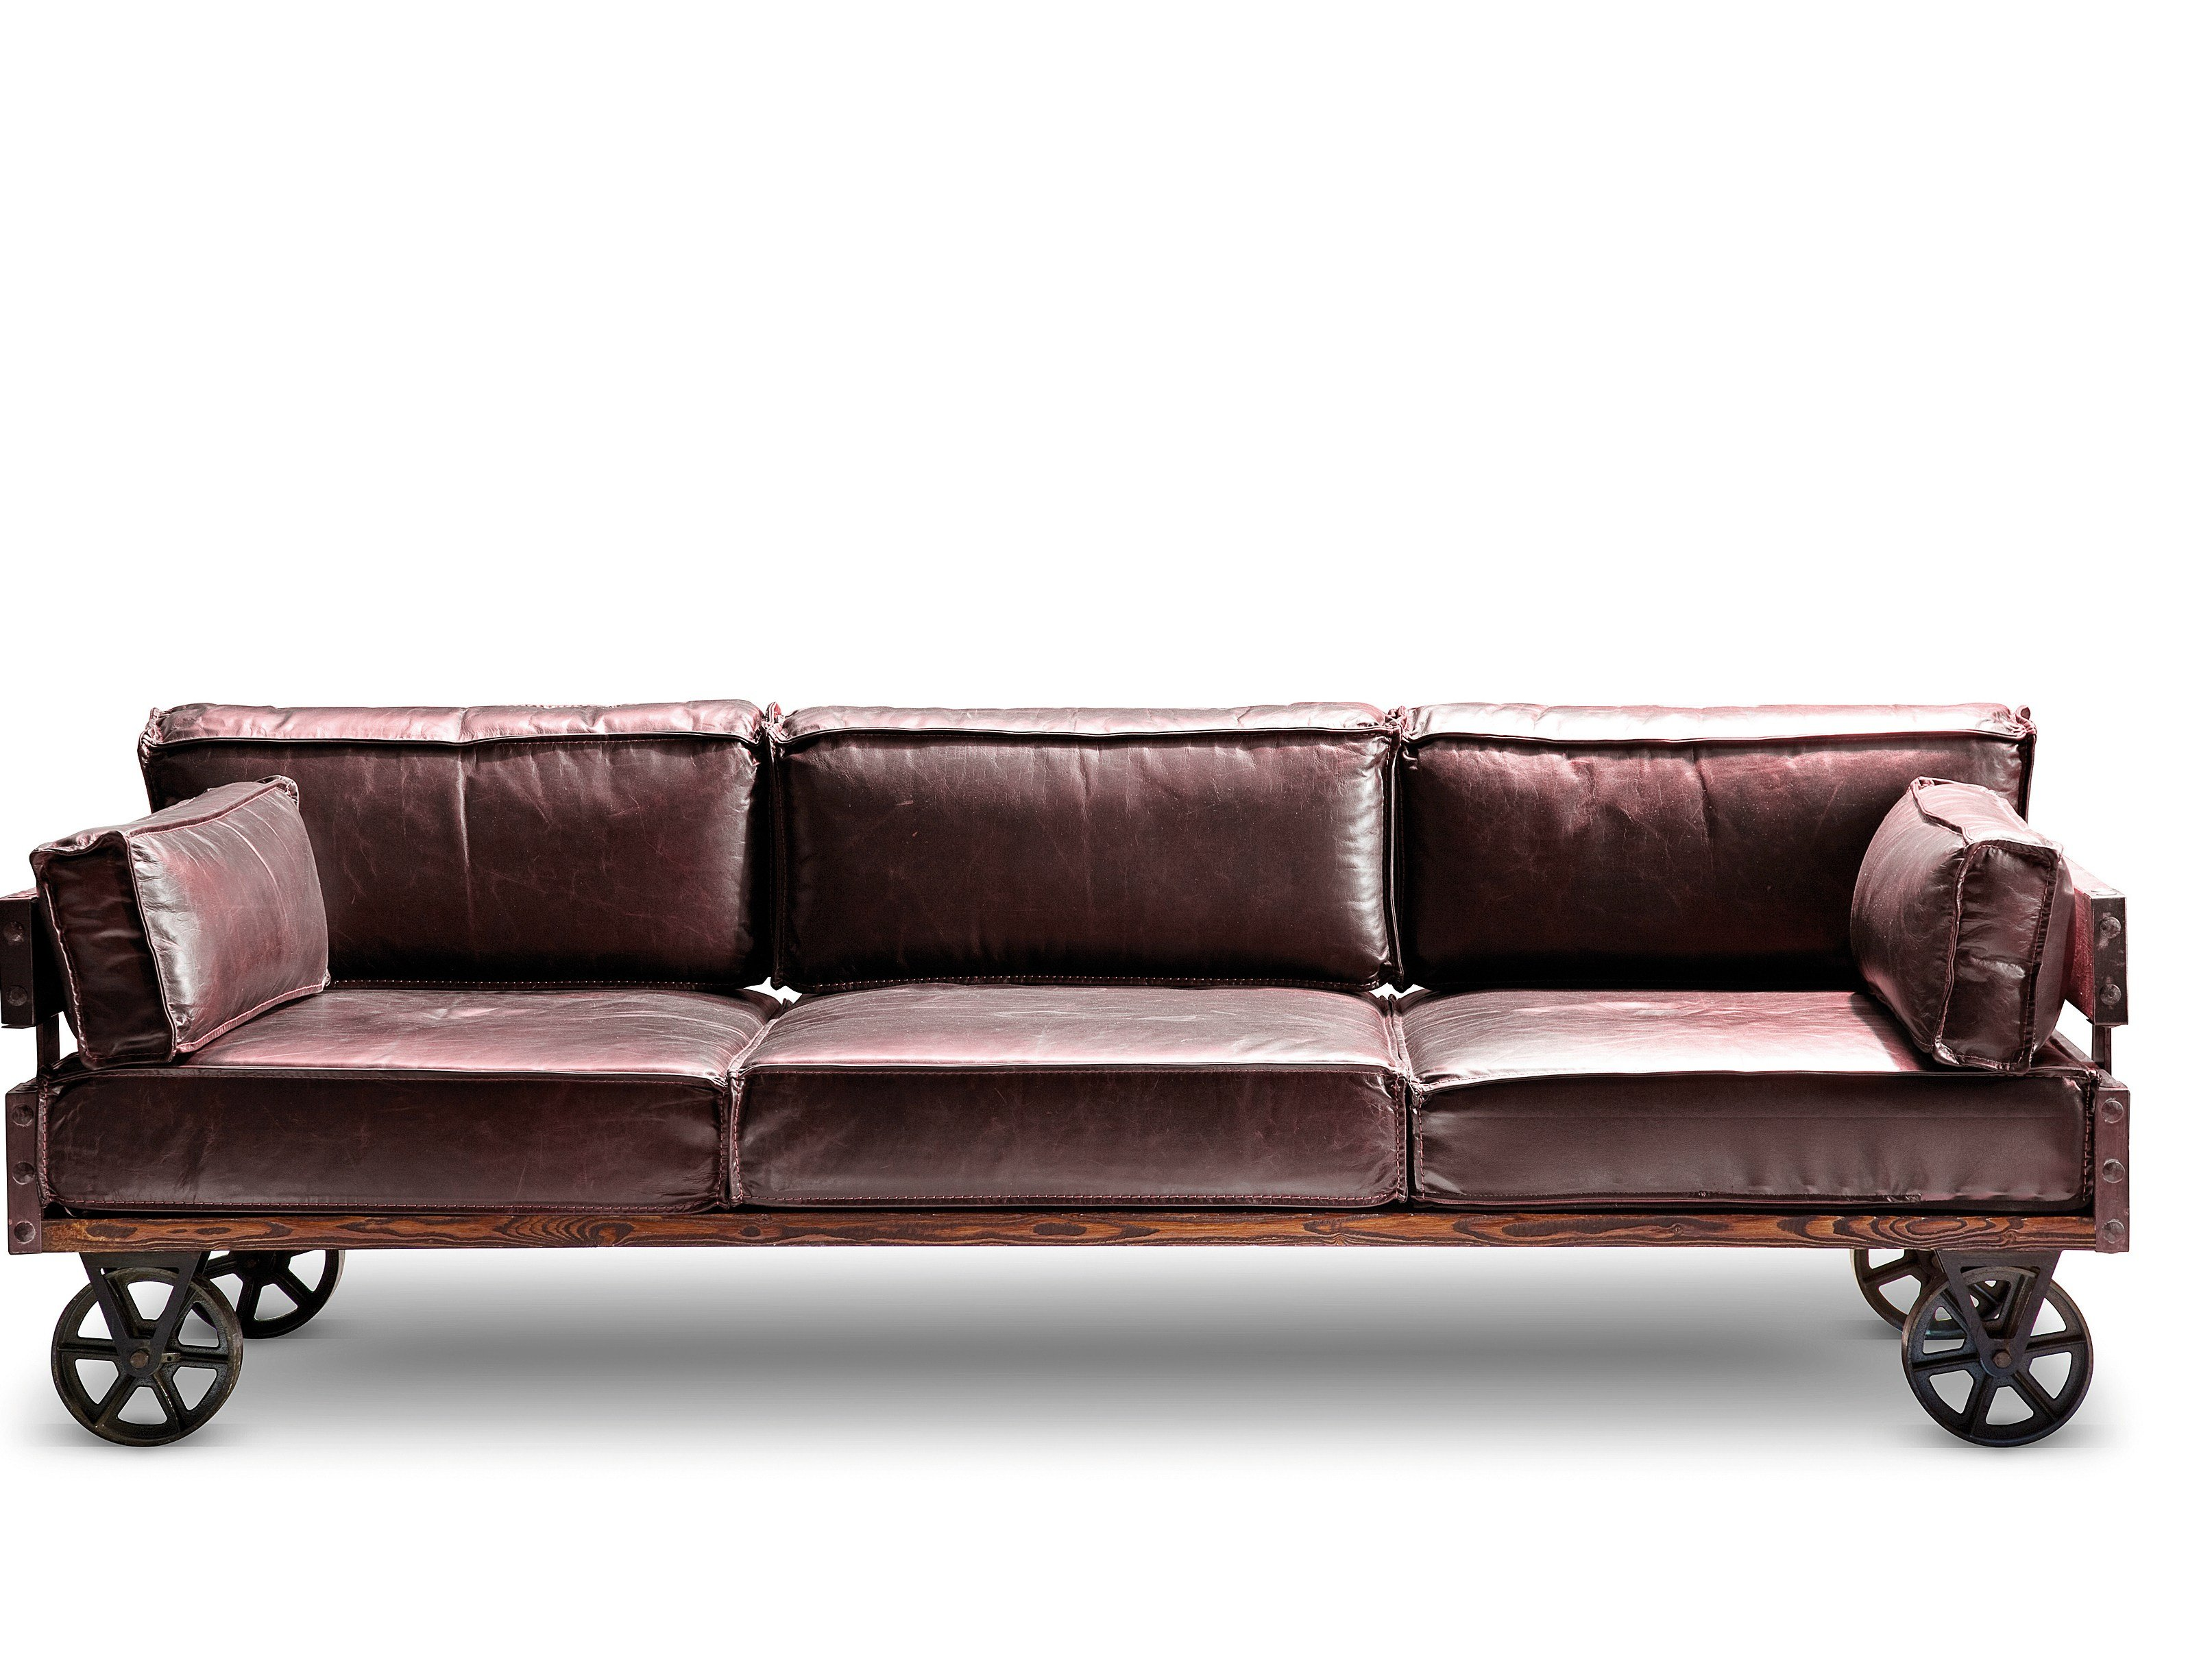 Railway Sofa By Kare Design